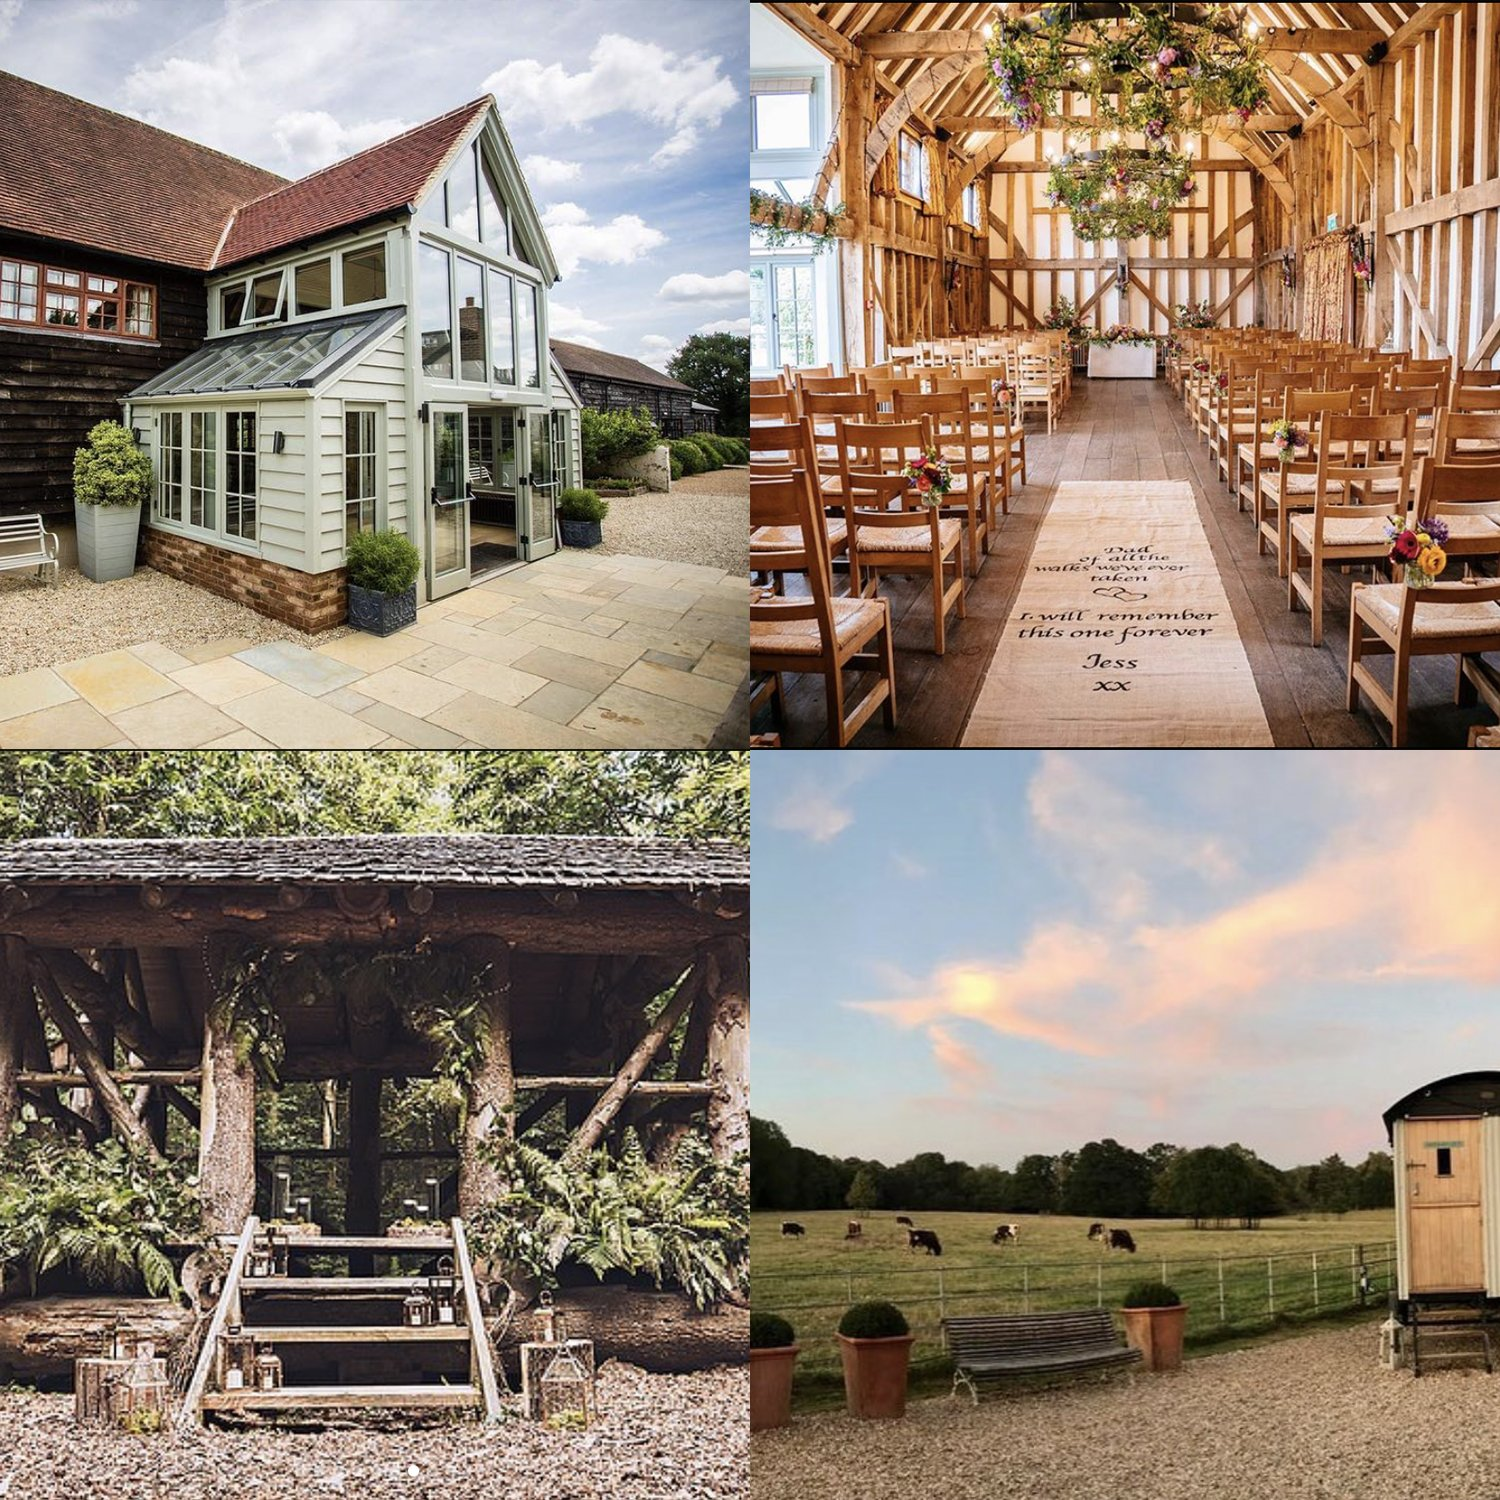 Gate Street Barn Surrey Wedding Venue | wedding stationery Surrey, Flamboyant Invites